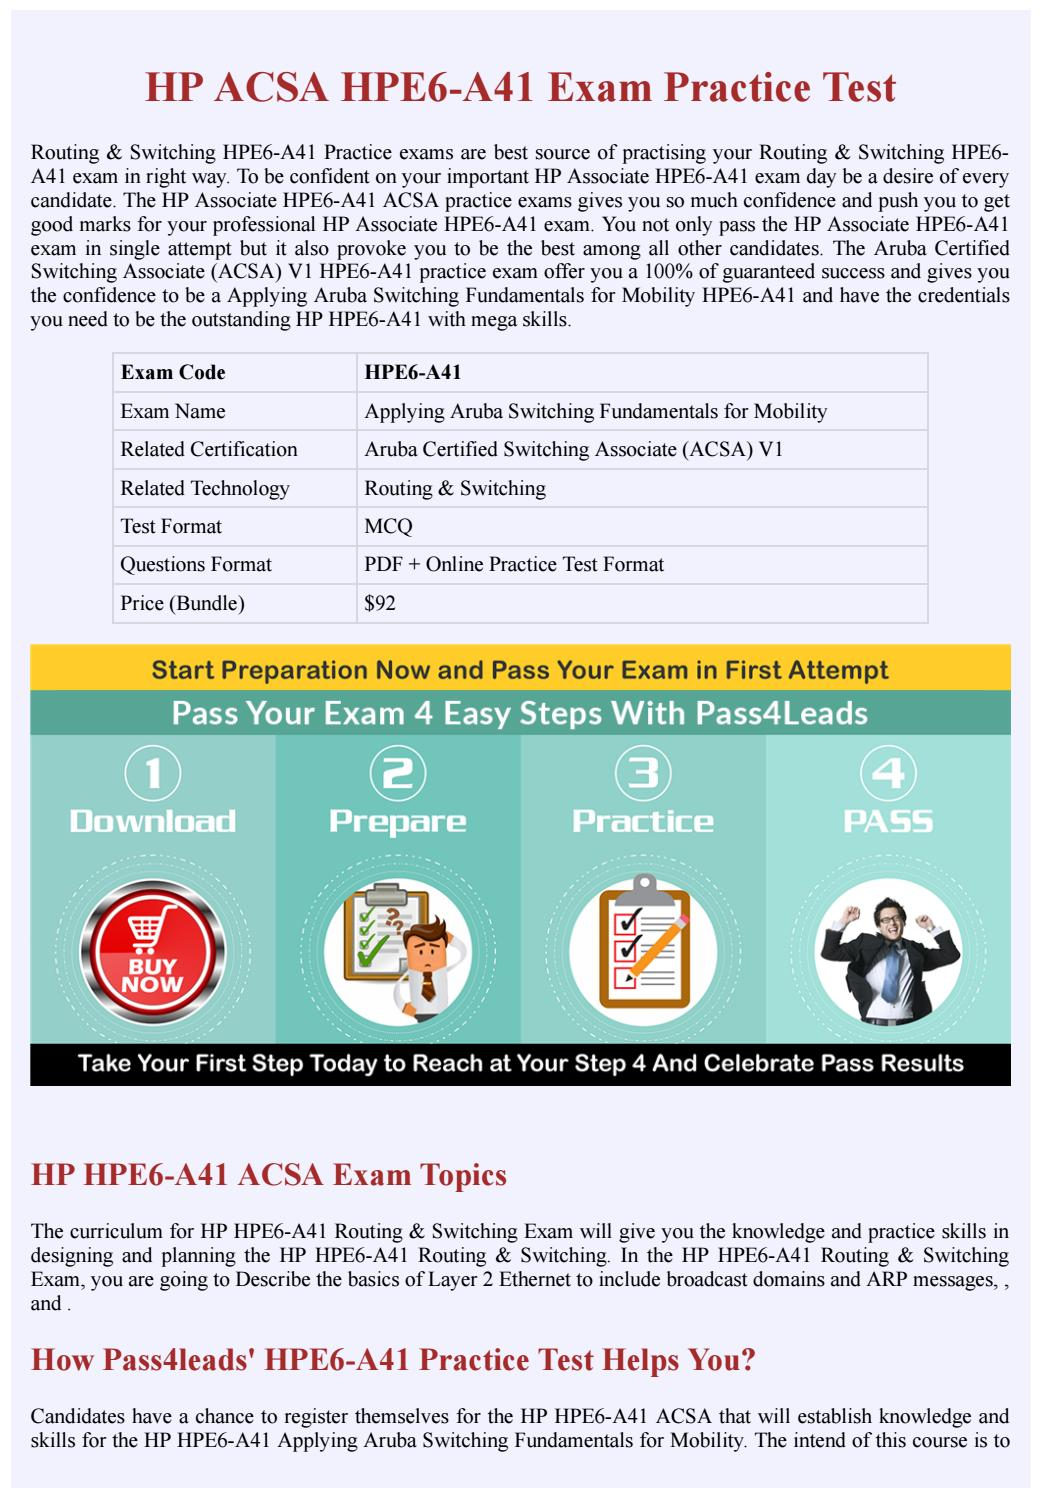 HP HPE6-A41 ACSA Practice Test - Updated 2018 by Pass4leads